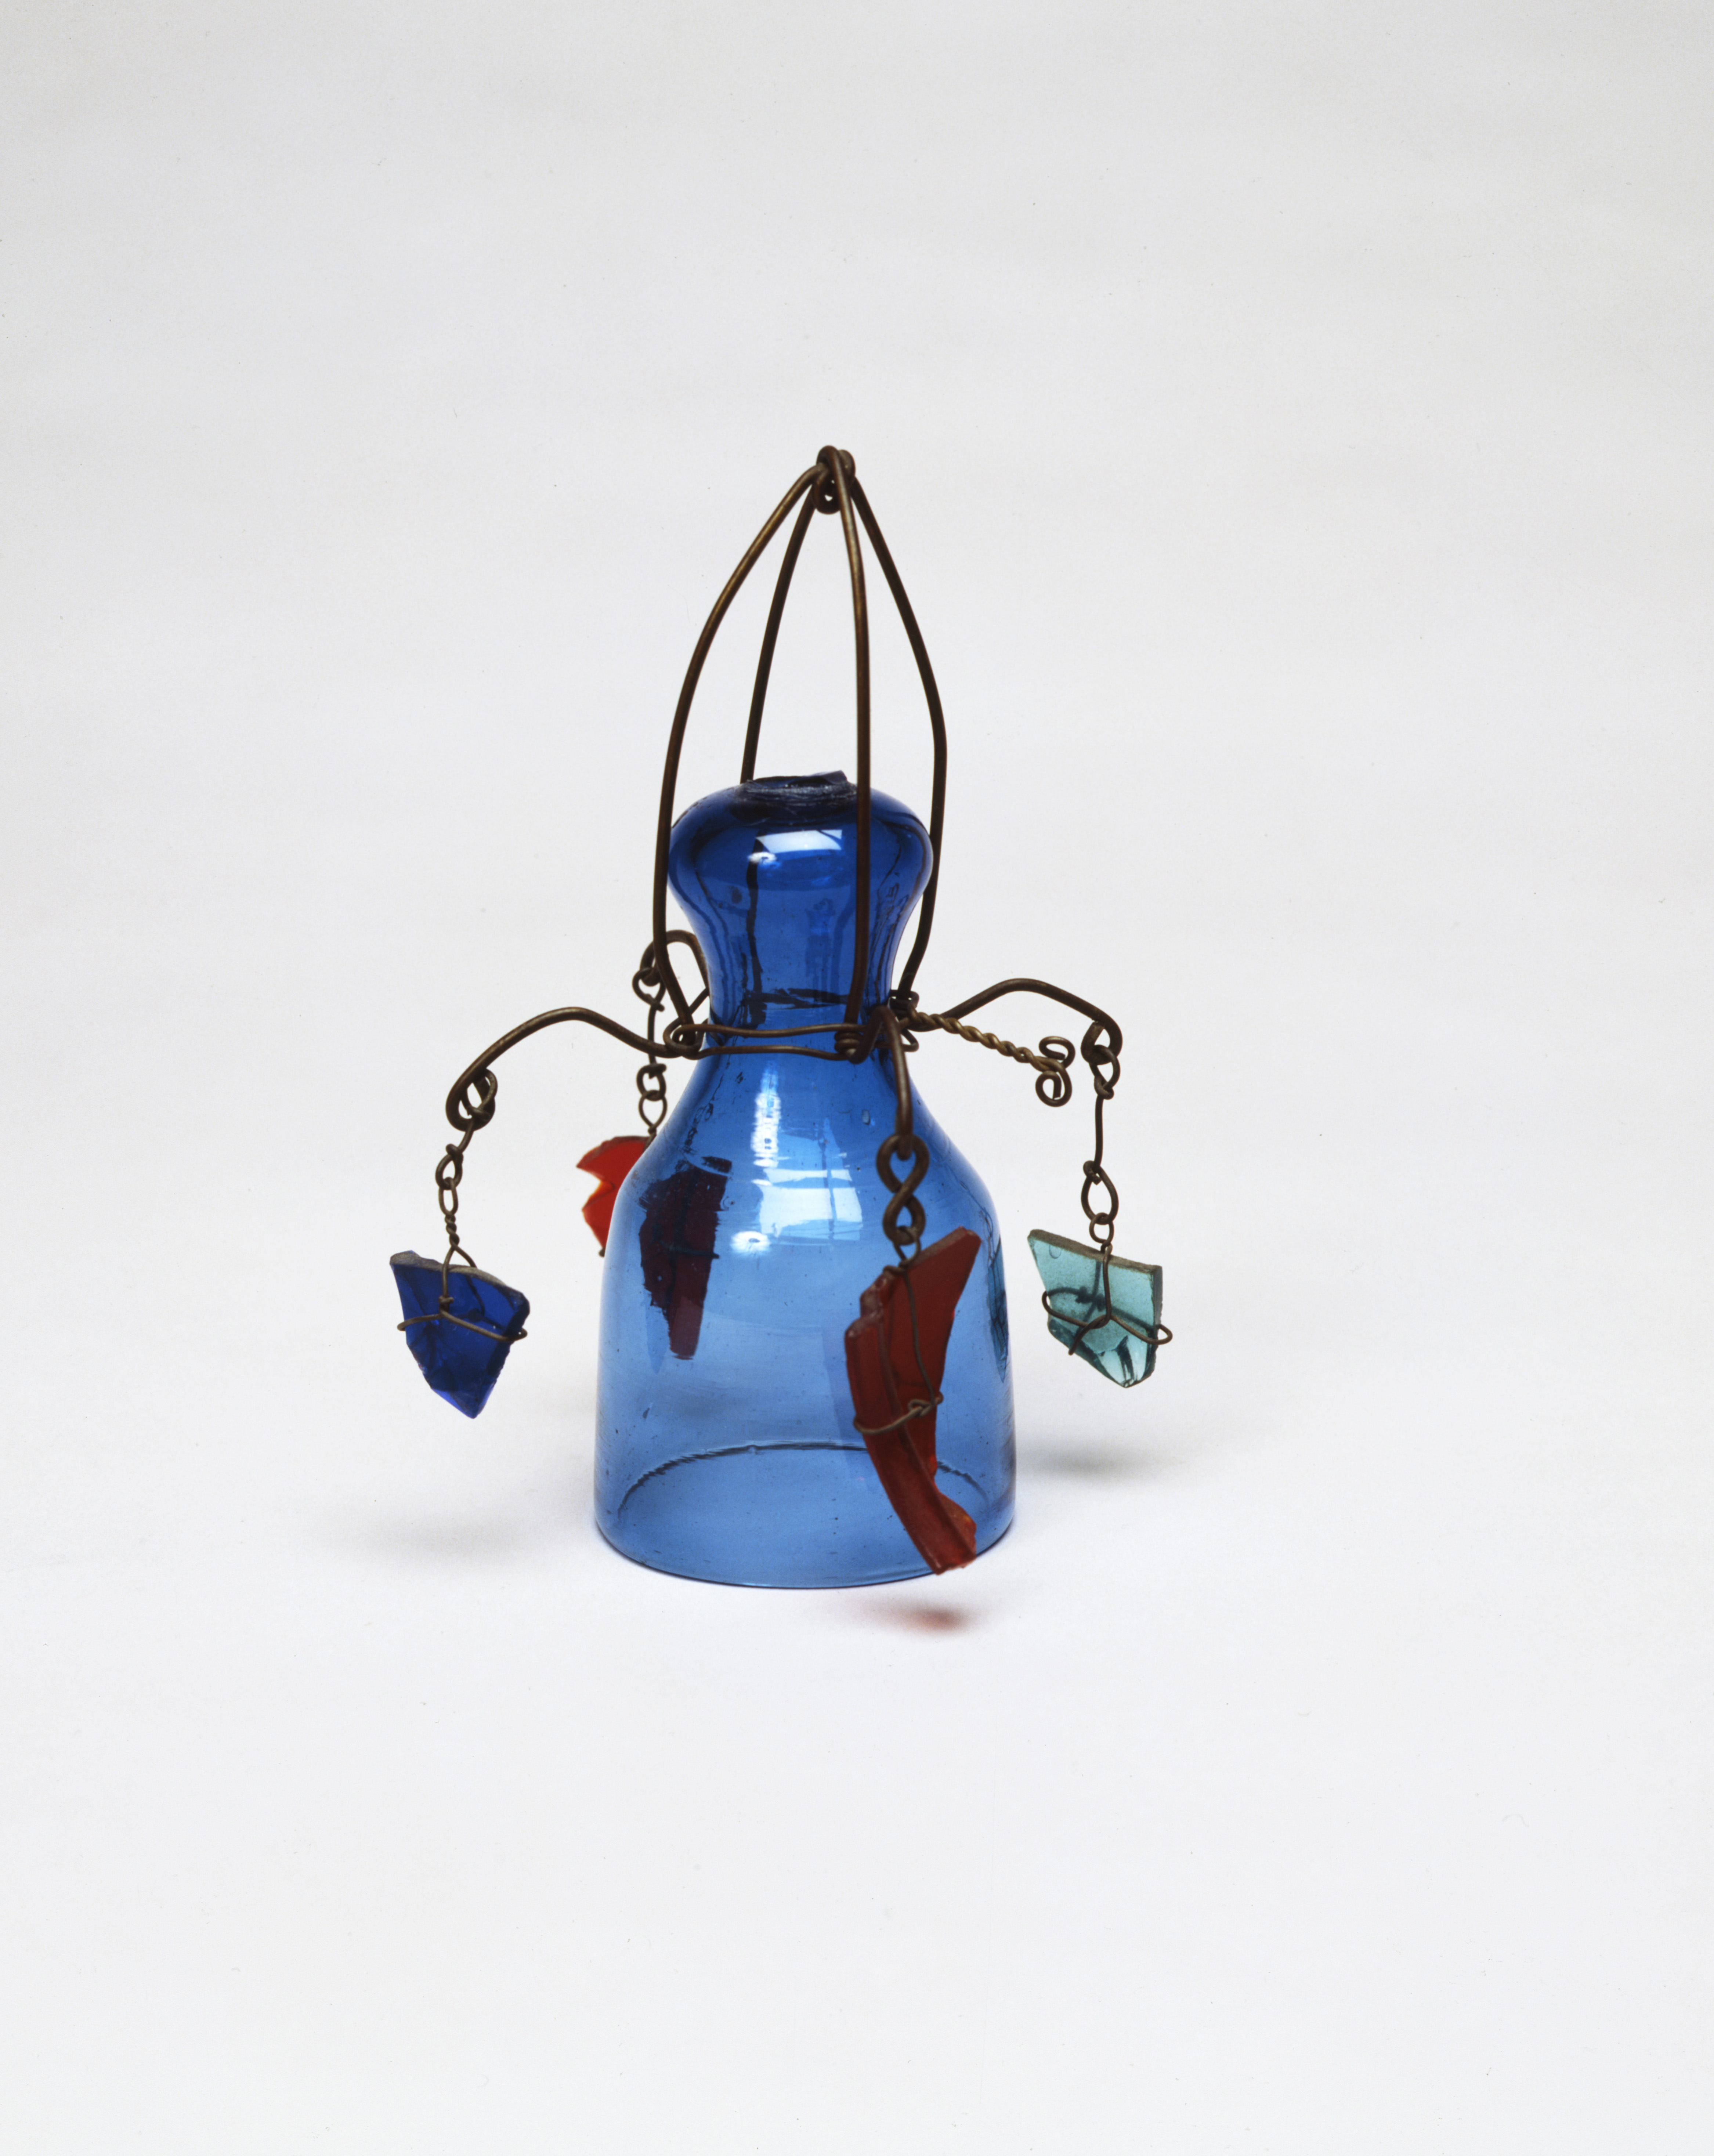 Alexander  Calder    Dinner  bell  c.  1942  Glass  and  wire  17.5  x  10.8  x  9.5  cm  /  6  7/8  x  4  1/4  x  3  3/4  in